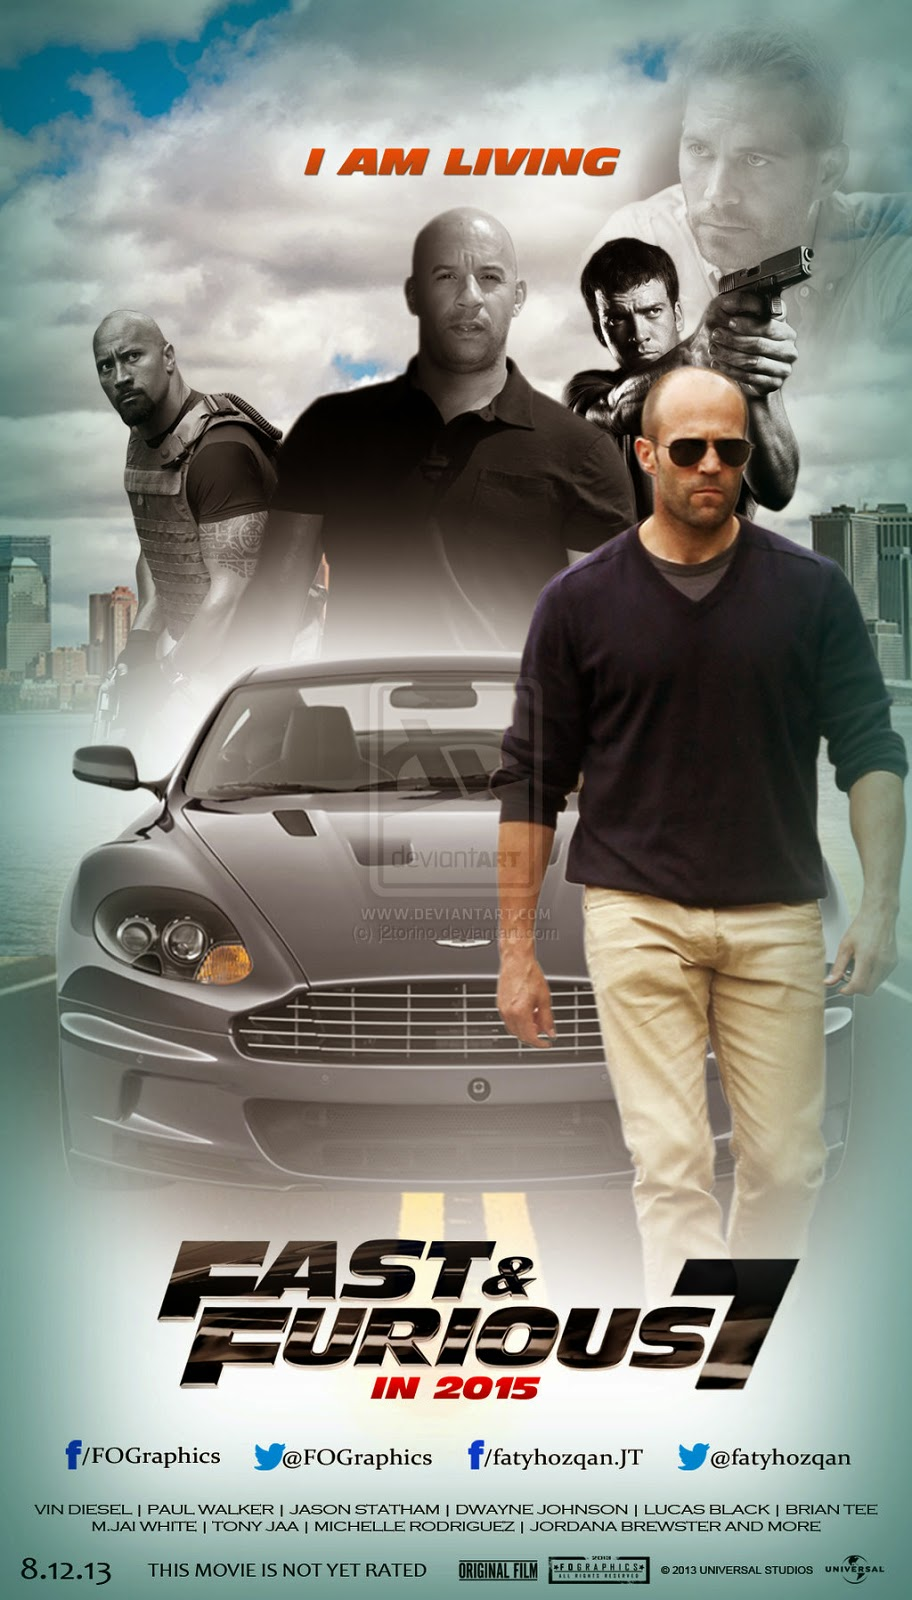 Fast and furious 4 full movie watch online with indonesian subtitles